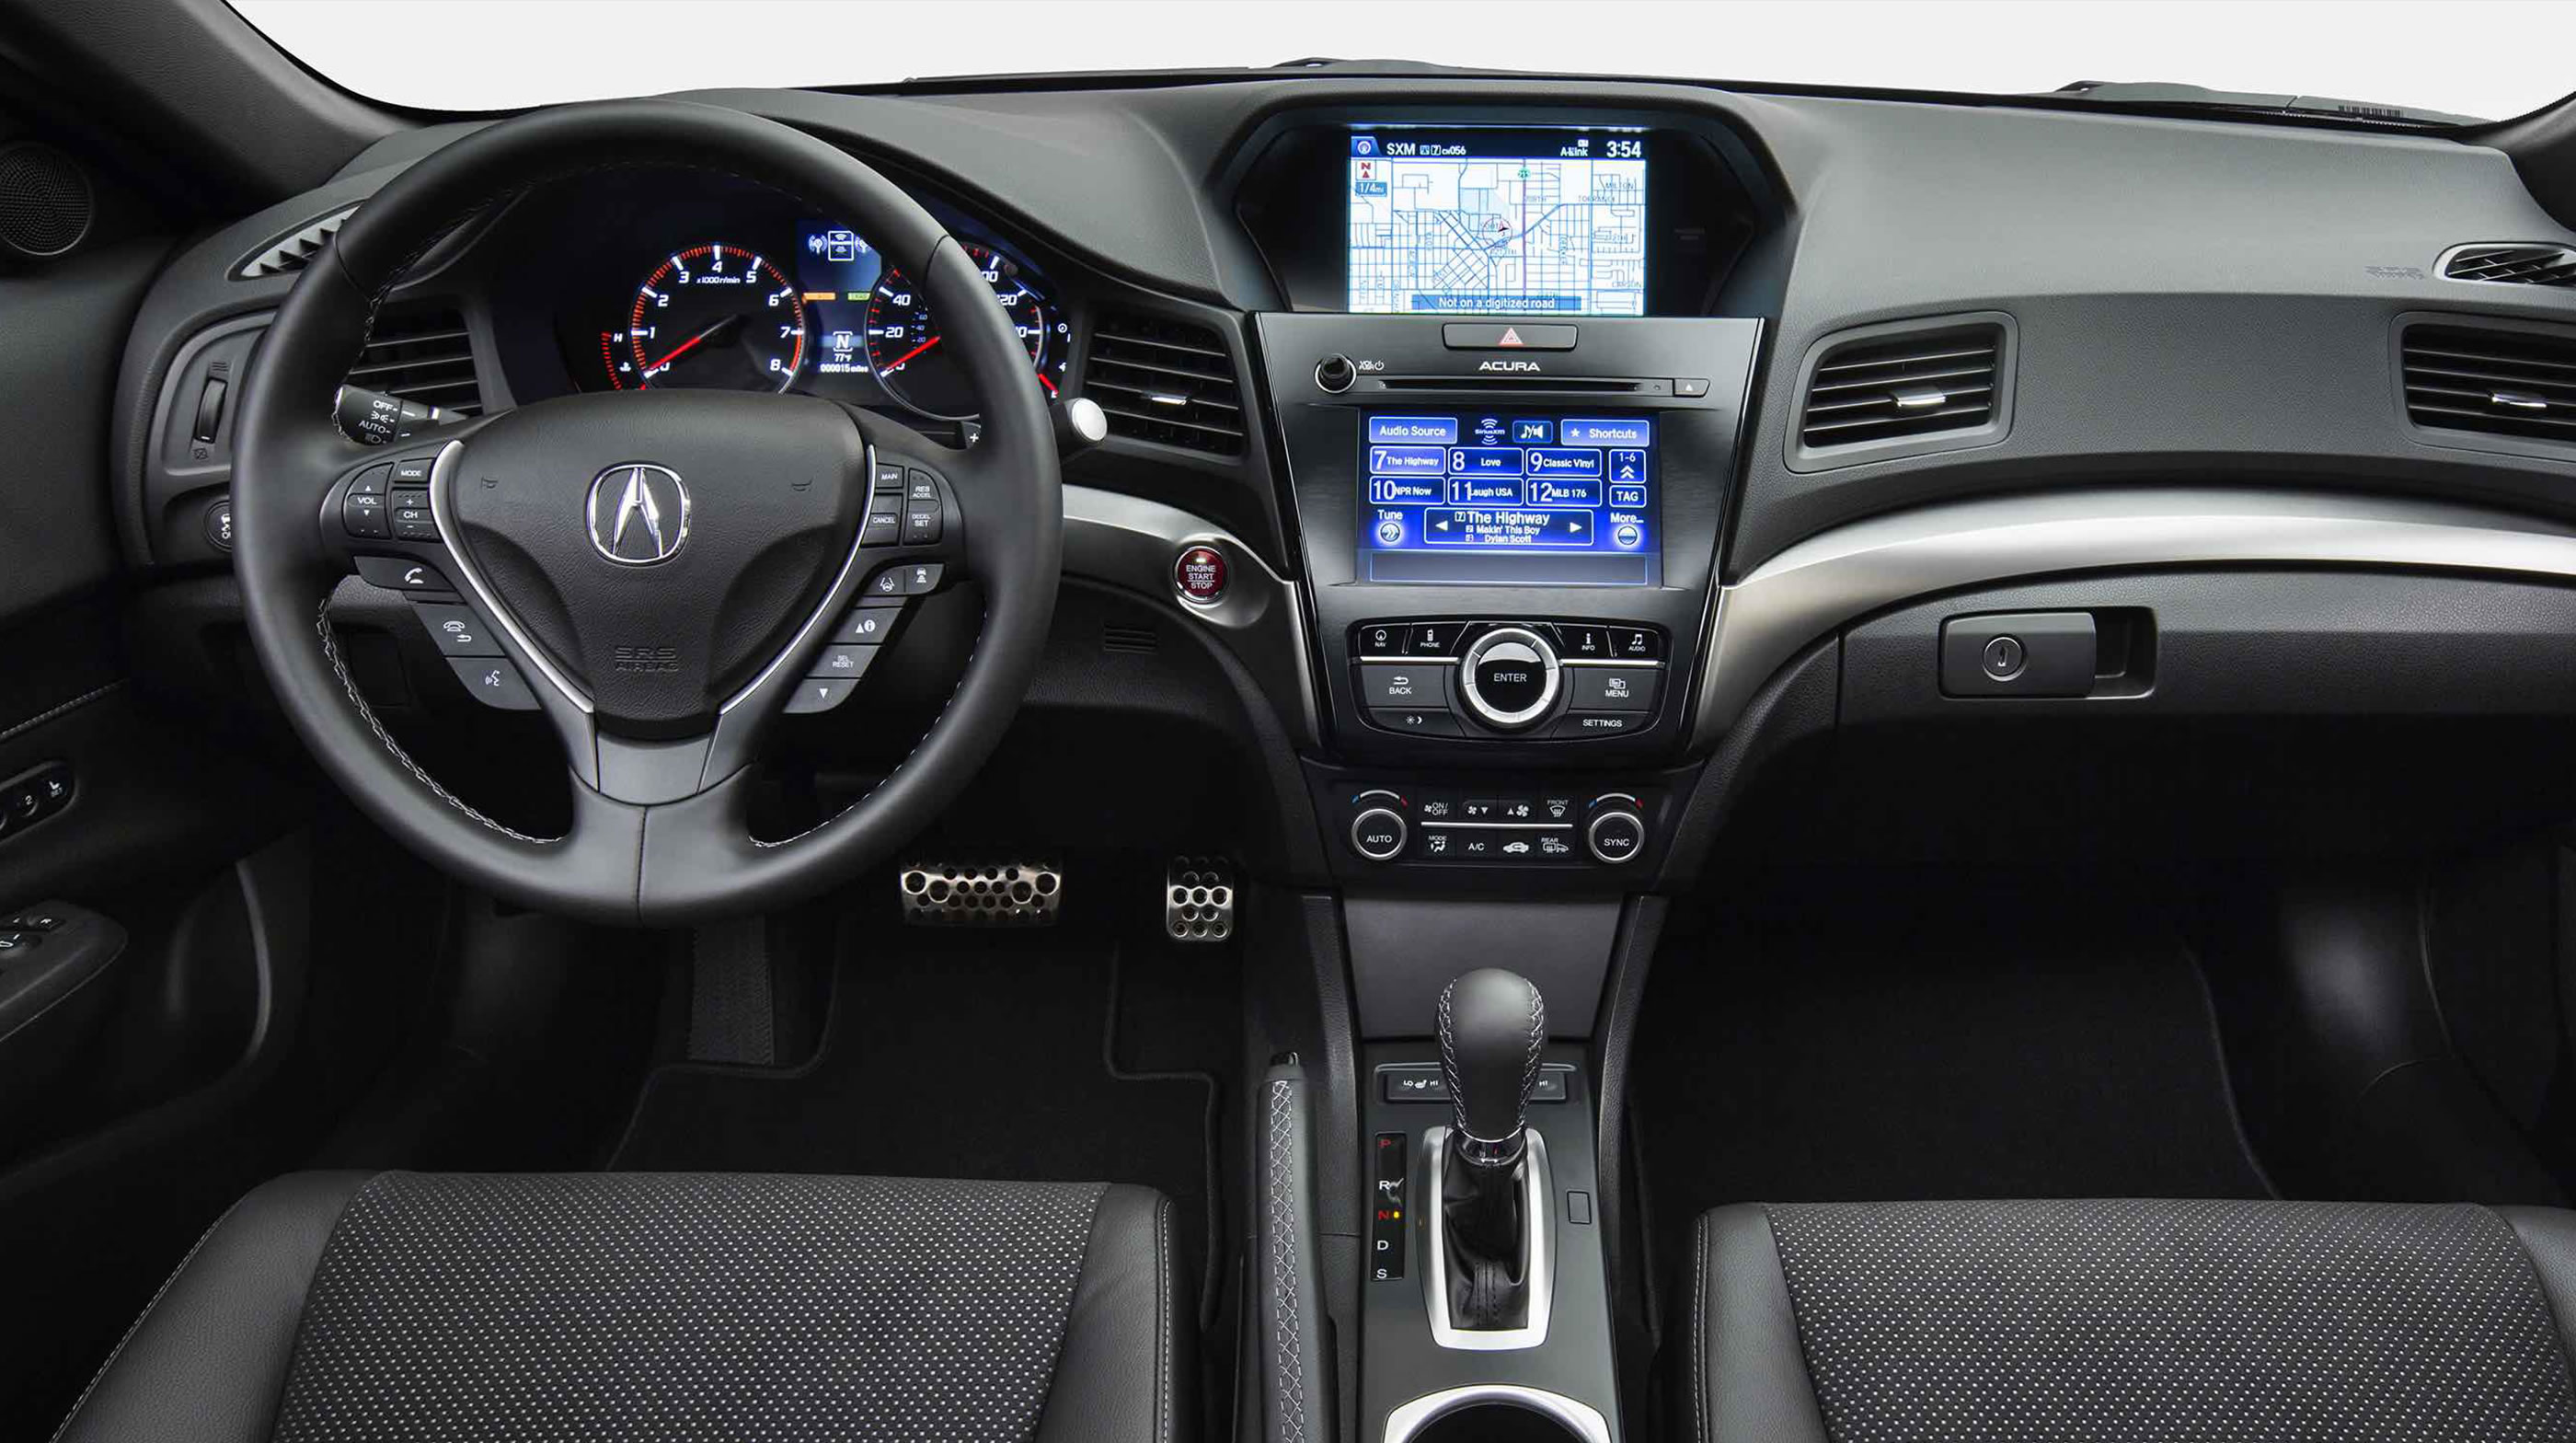 management pre all order torque injected pointed hires package awd lease an silver economy offers acura building liter of leading new mdx htm class accessories improved engine sh cylinder i anticipated vtec exterior pleasanton moon fuel direct in with and advance variable